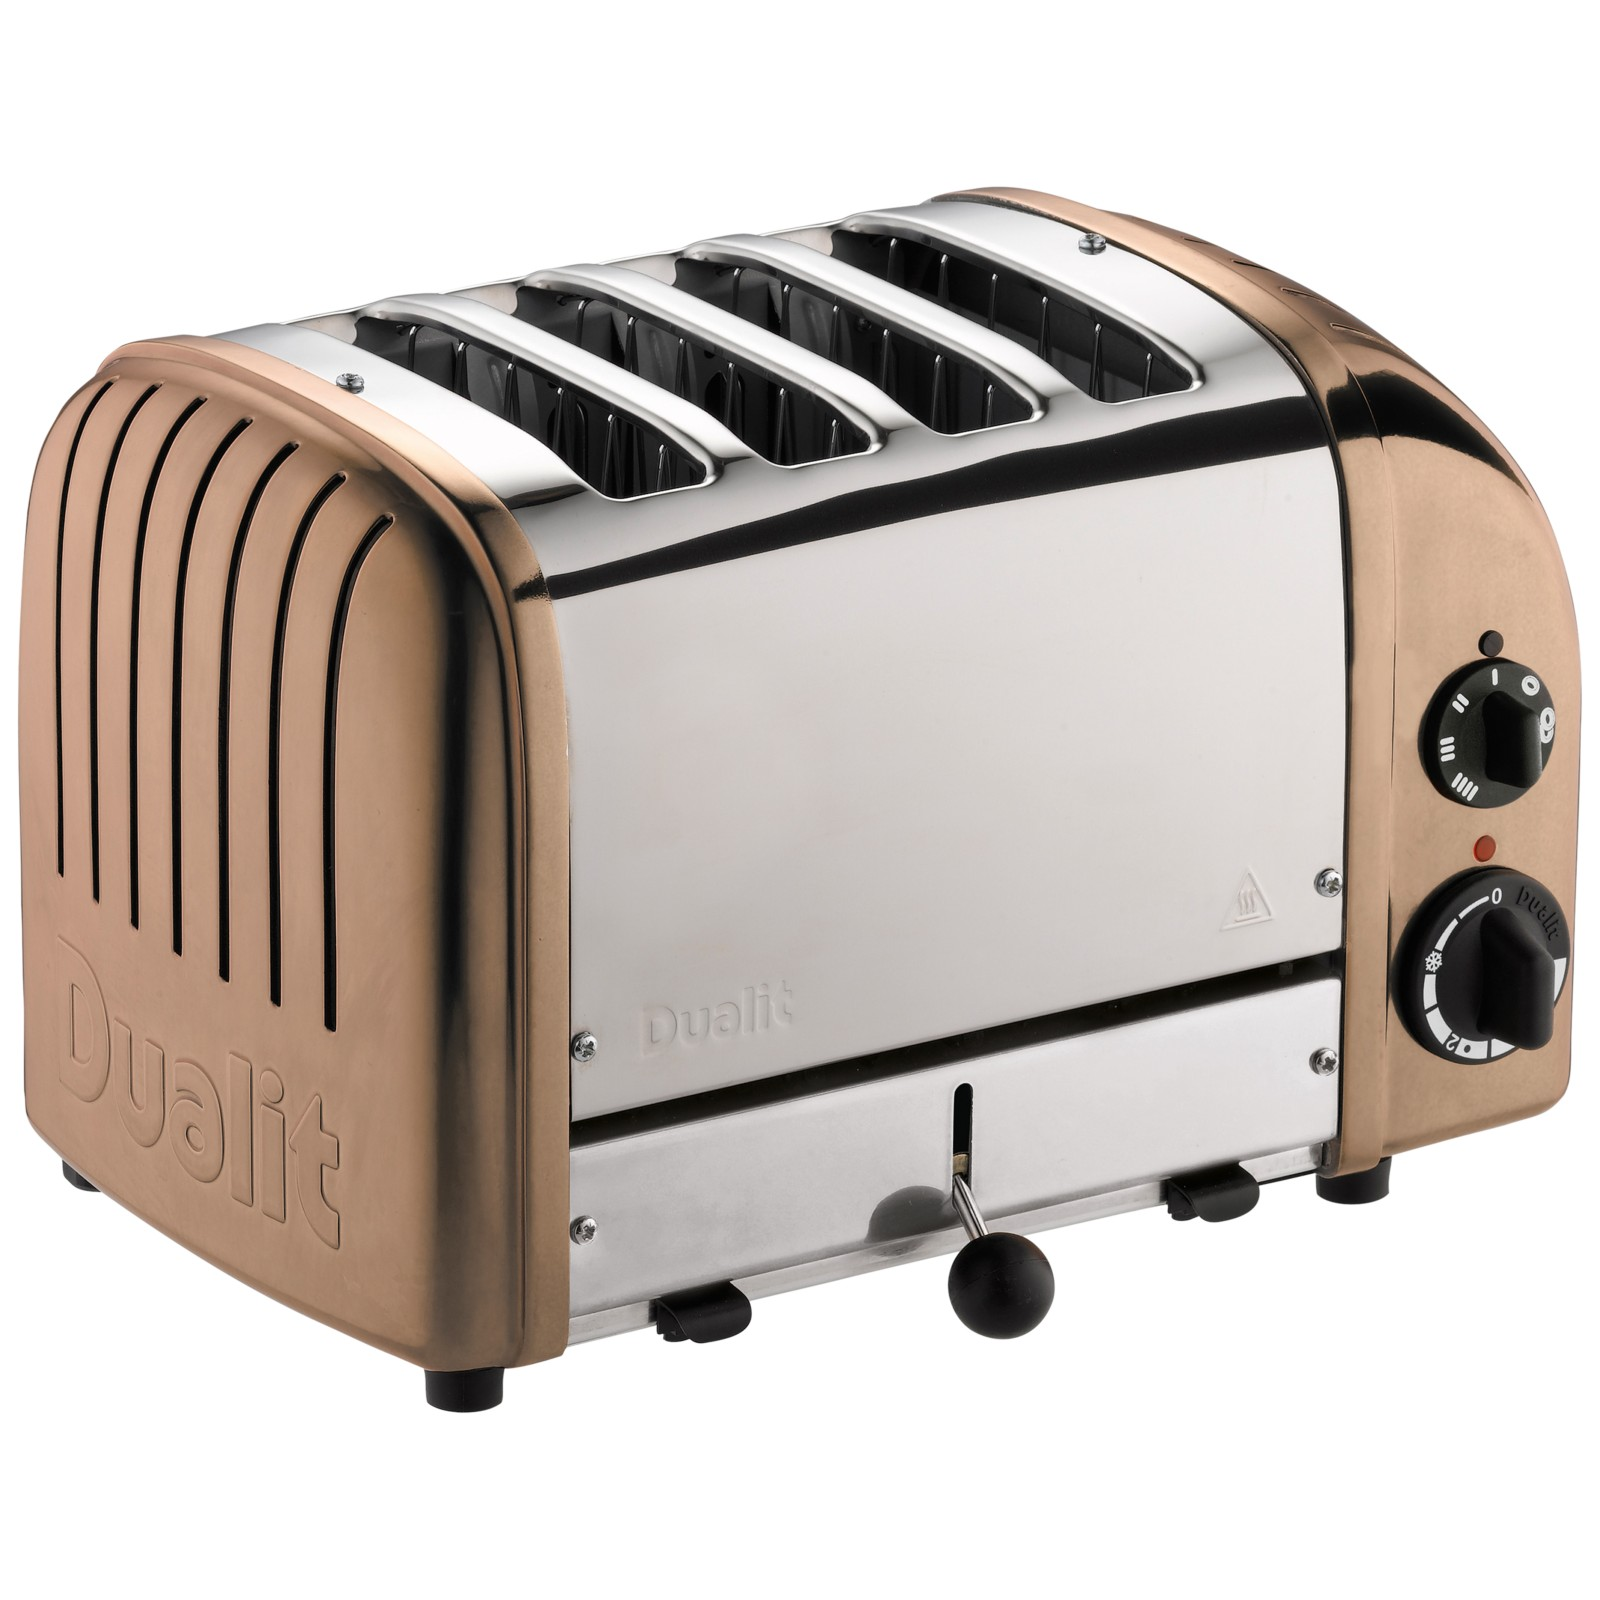 Dualit NewGen 4-Slice Toaster Copper